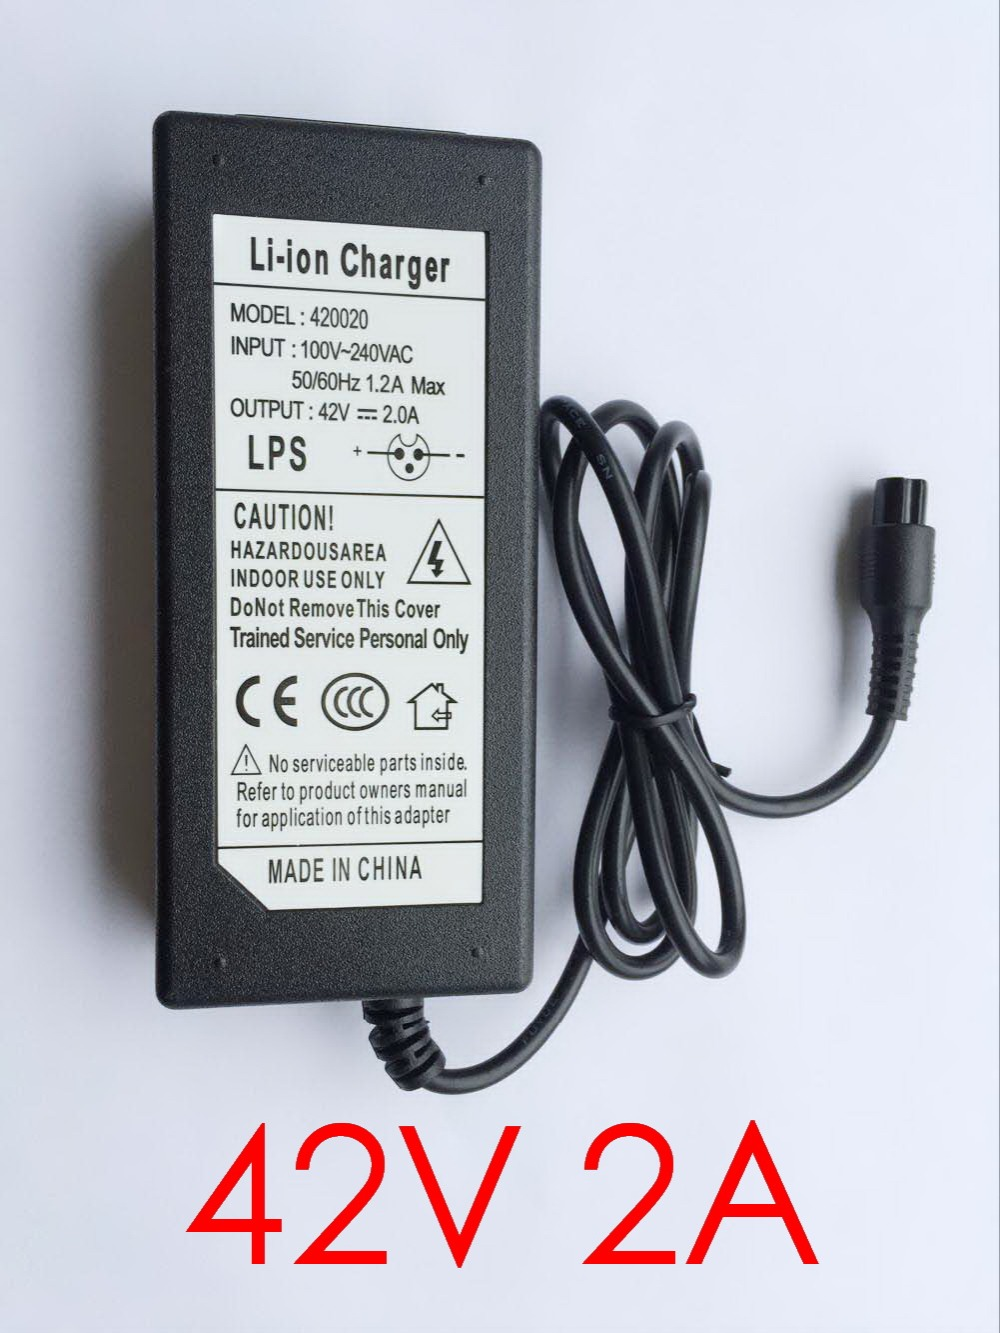 42V 2A Lipo Battery Charger Scooter Balance Charger For Electric Scooter Self Balancing Scooter 84W Charge Smart Protection